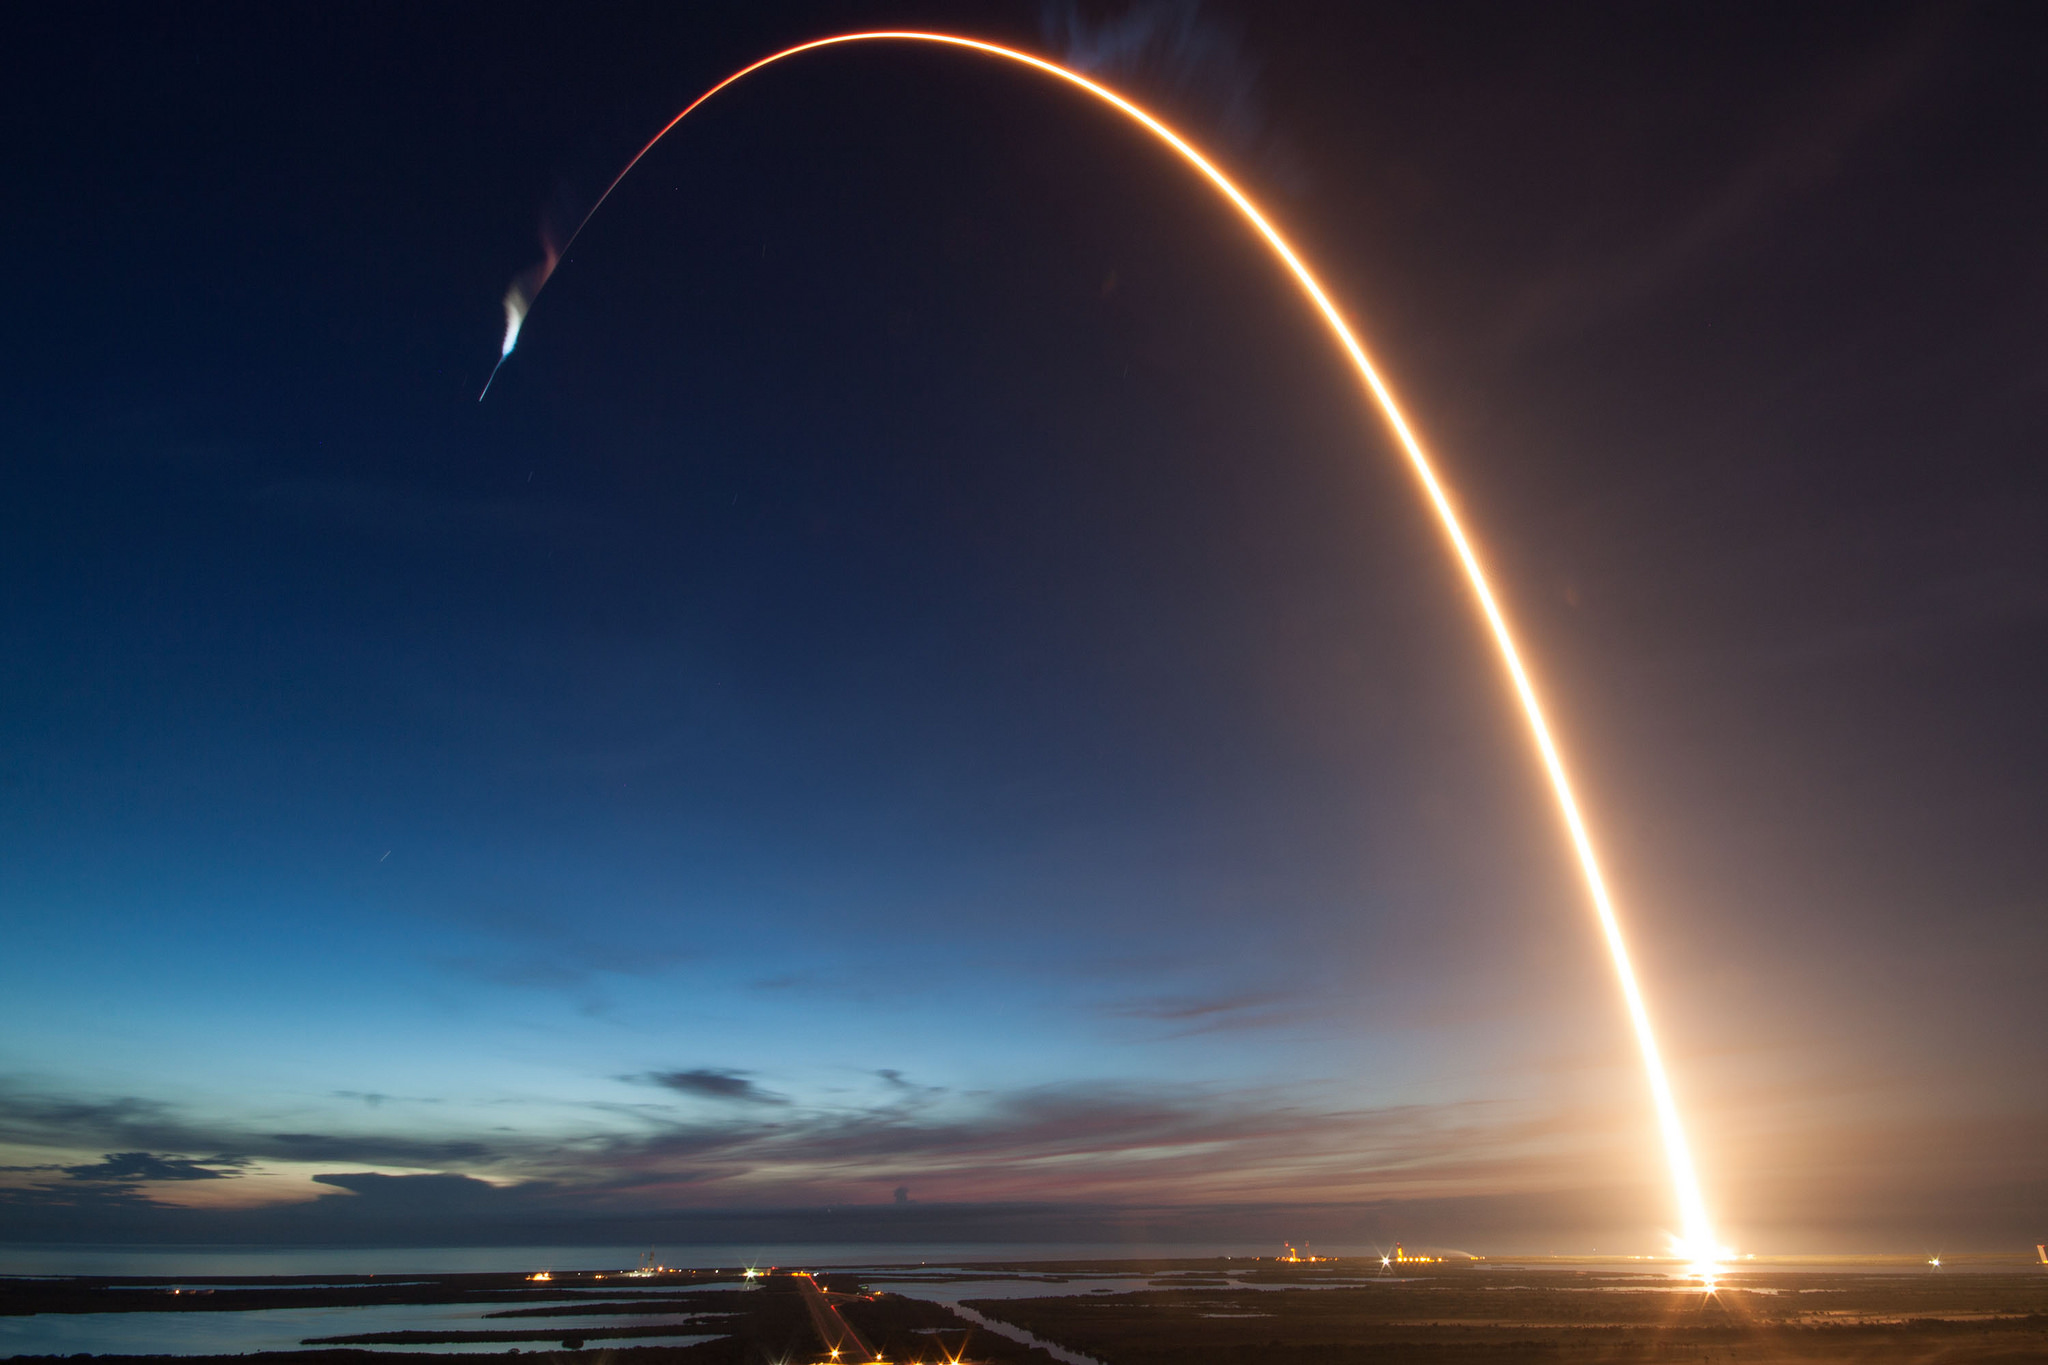 SpaceX's Falcon 9 Rocket Launches Dragon to the International Space Station